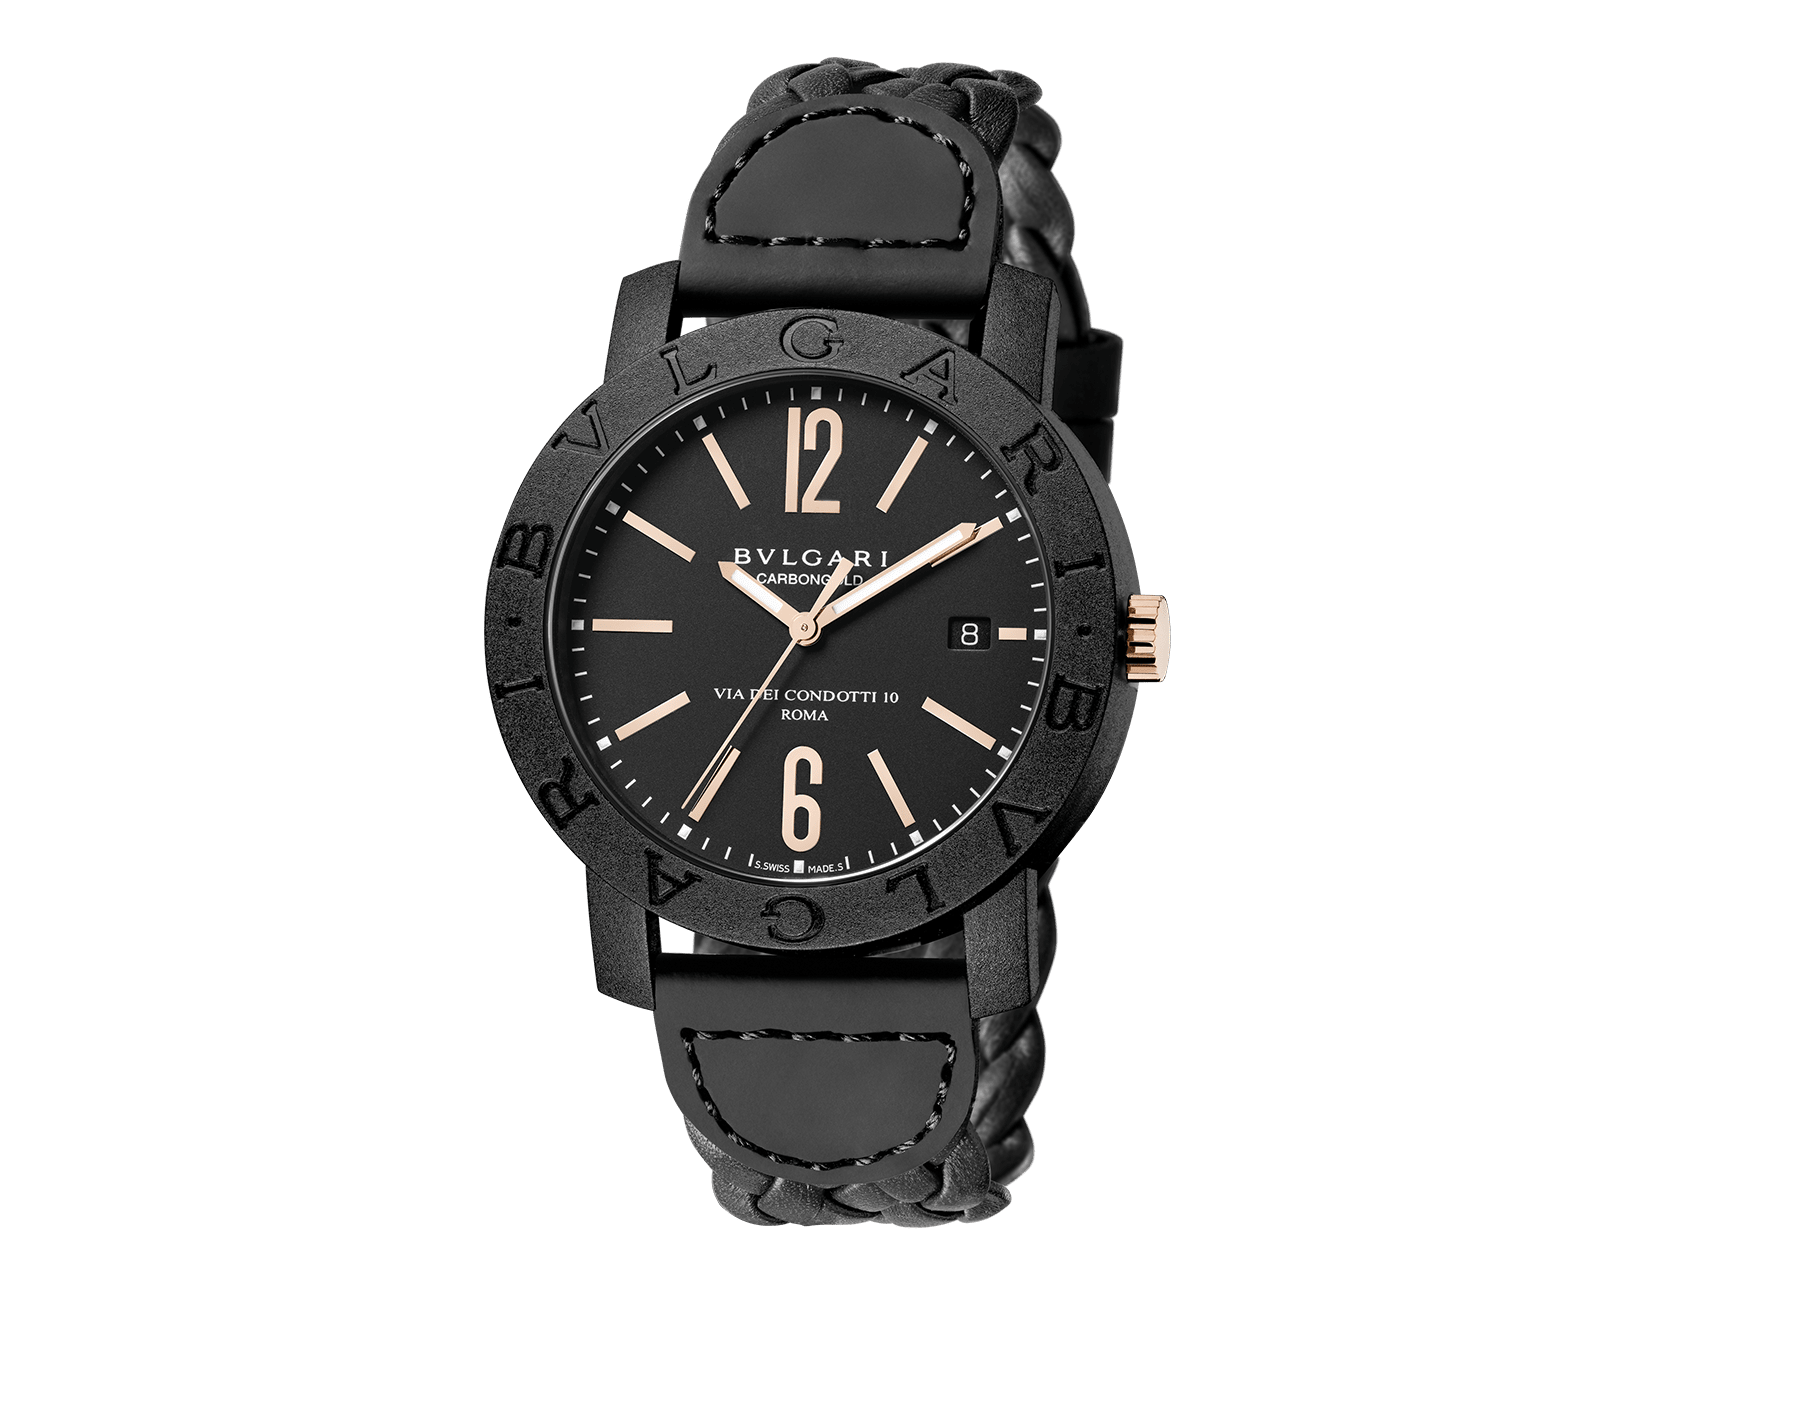 BVLGARI BVLGARI CARBON GOLD watch with mechanical movement, automatic winding and date, carbon gold case, black dial and woven leather bracelet 102632 image 1